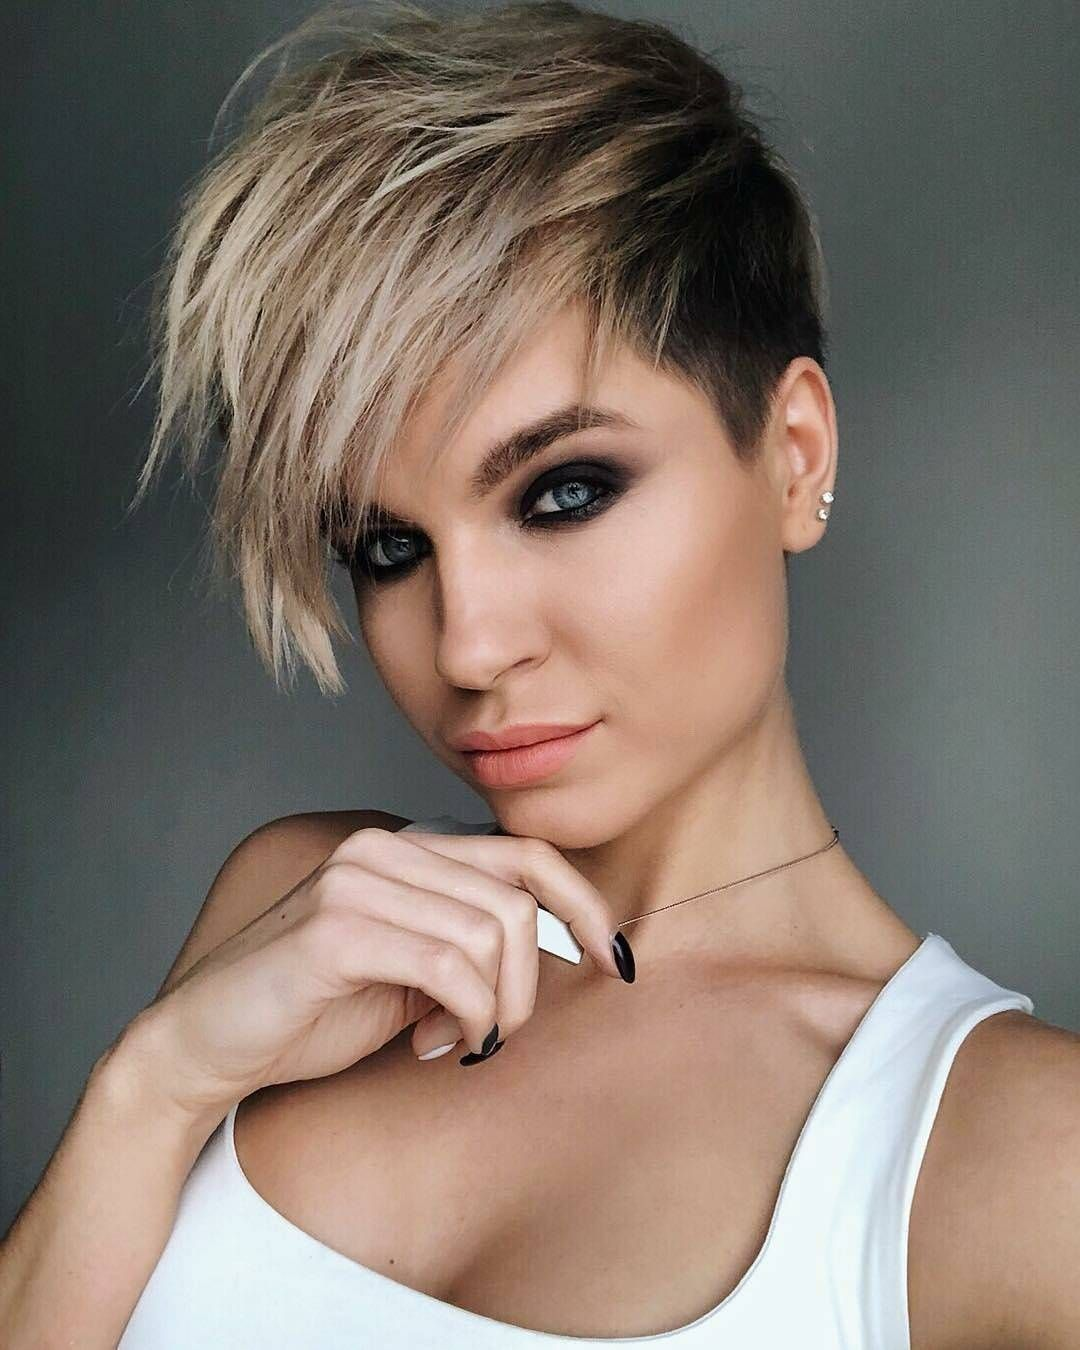 Chic short hairstyles for thick hair women short haircut